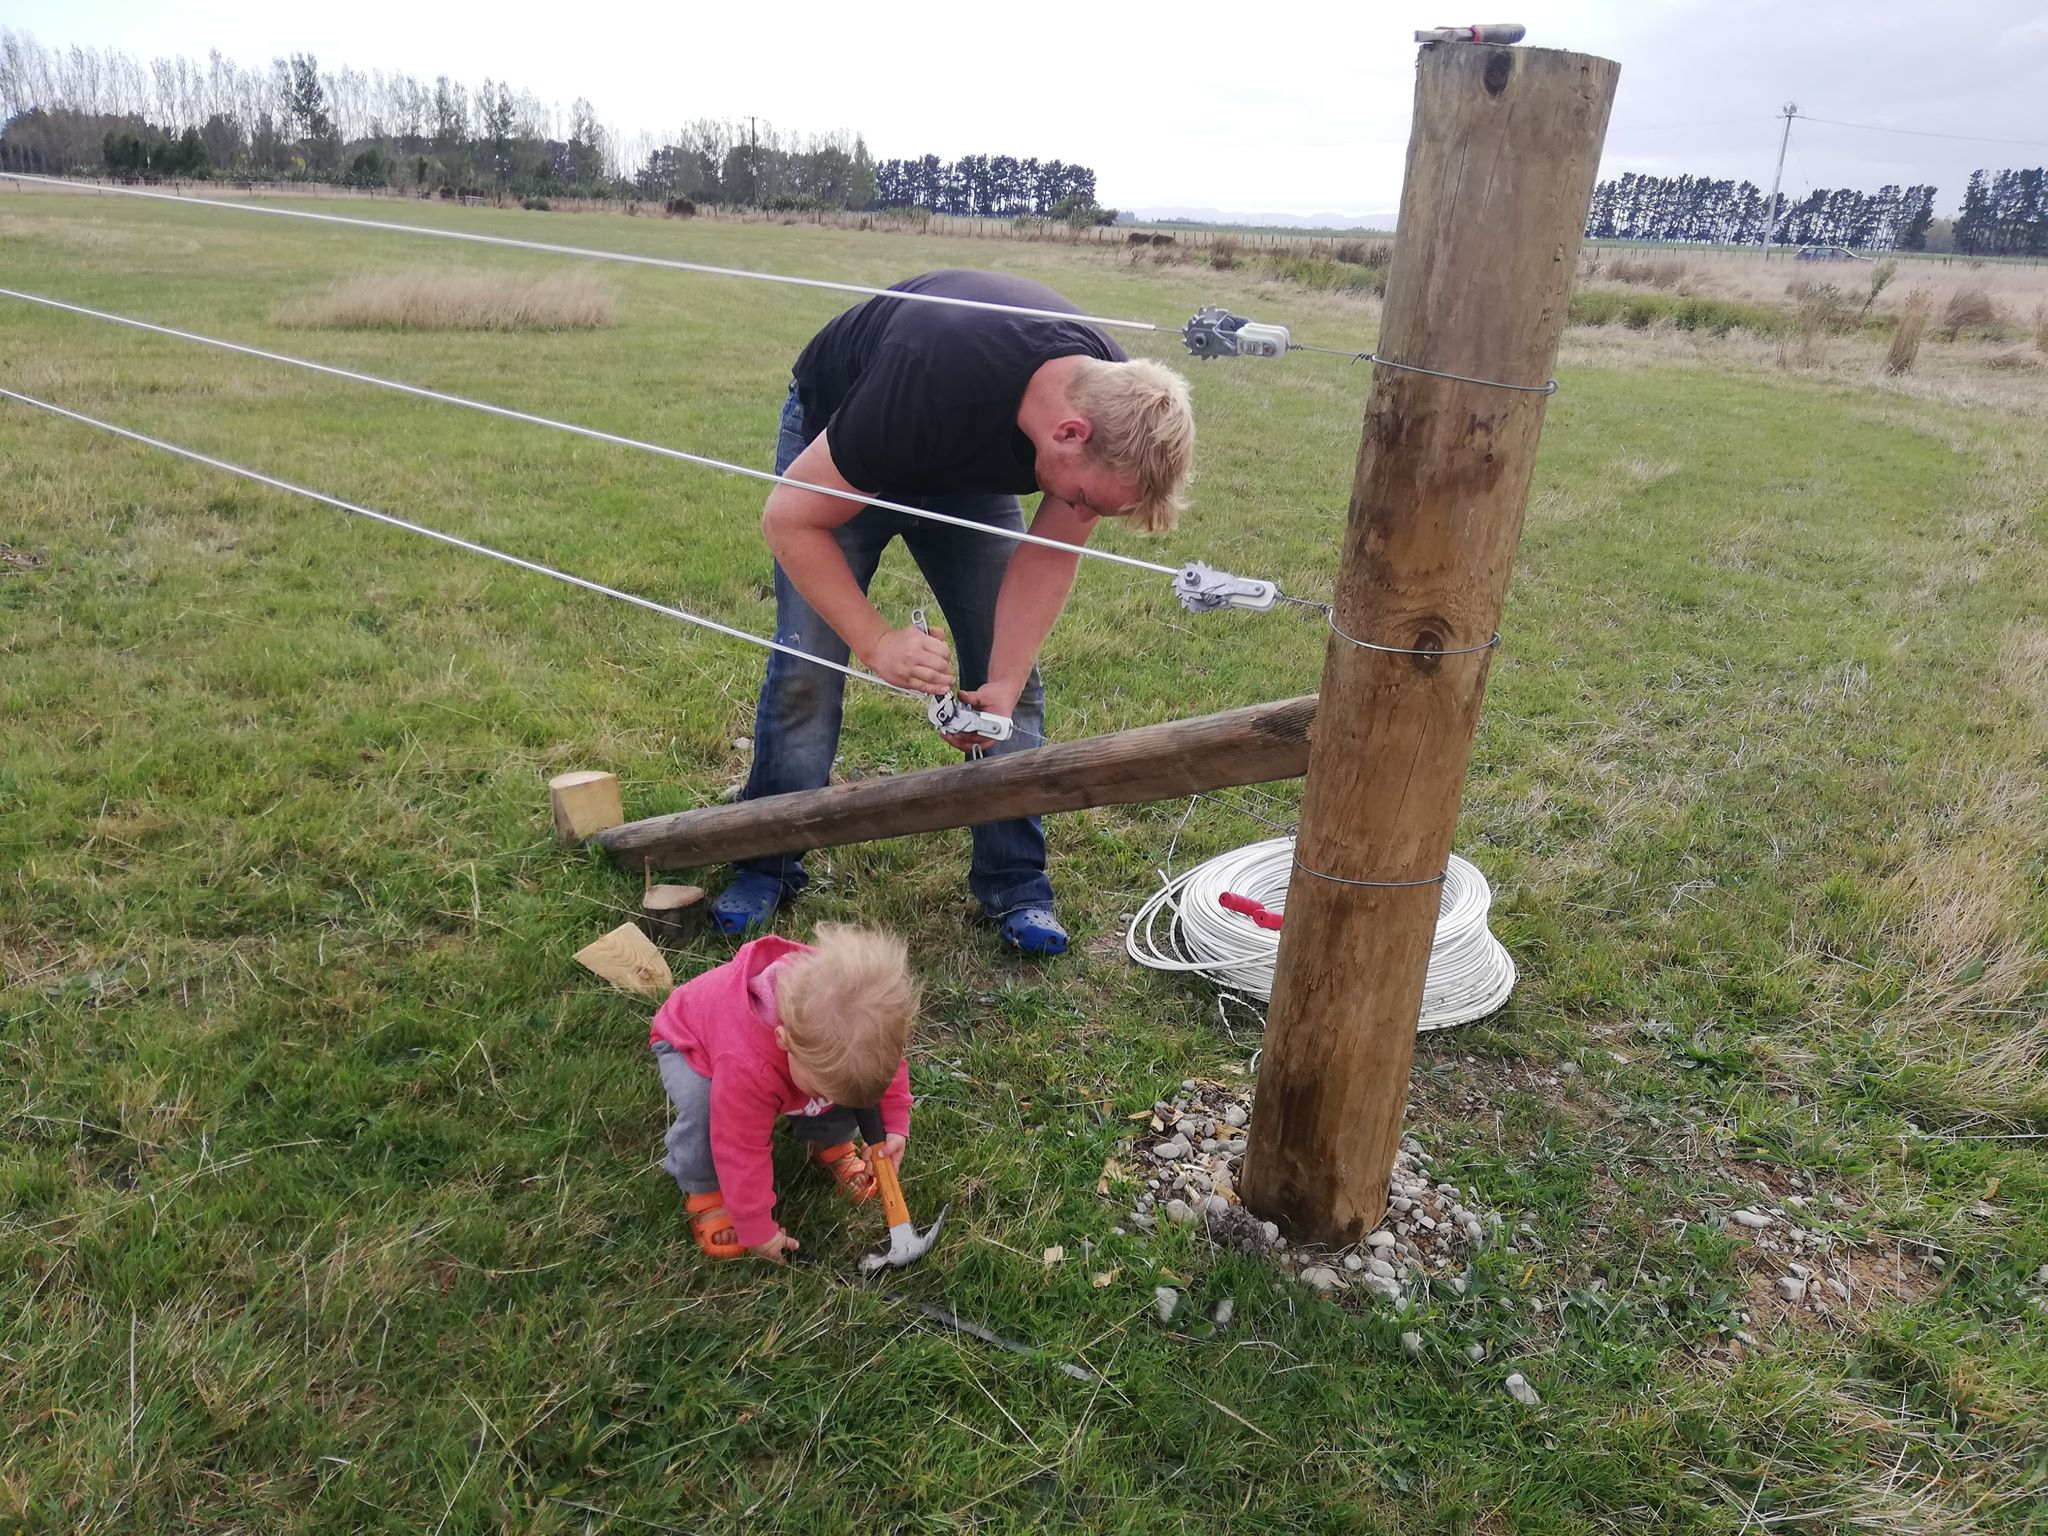 Sending digital photos is a great way to keep in touch with long-distance family. Ben and Percy build a fence together in New Zealand.